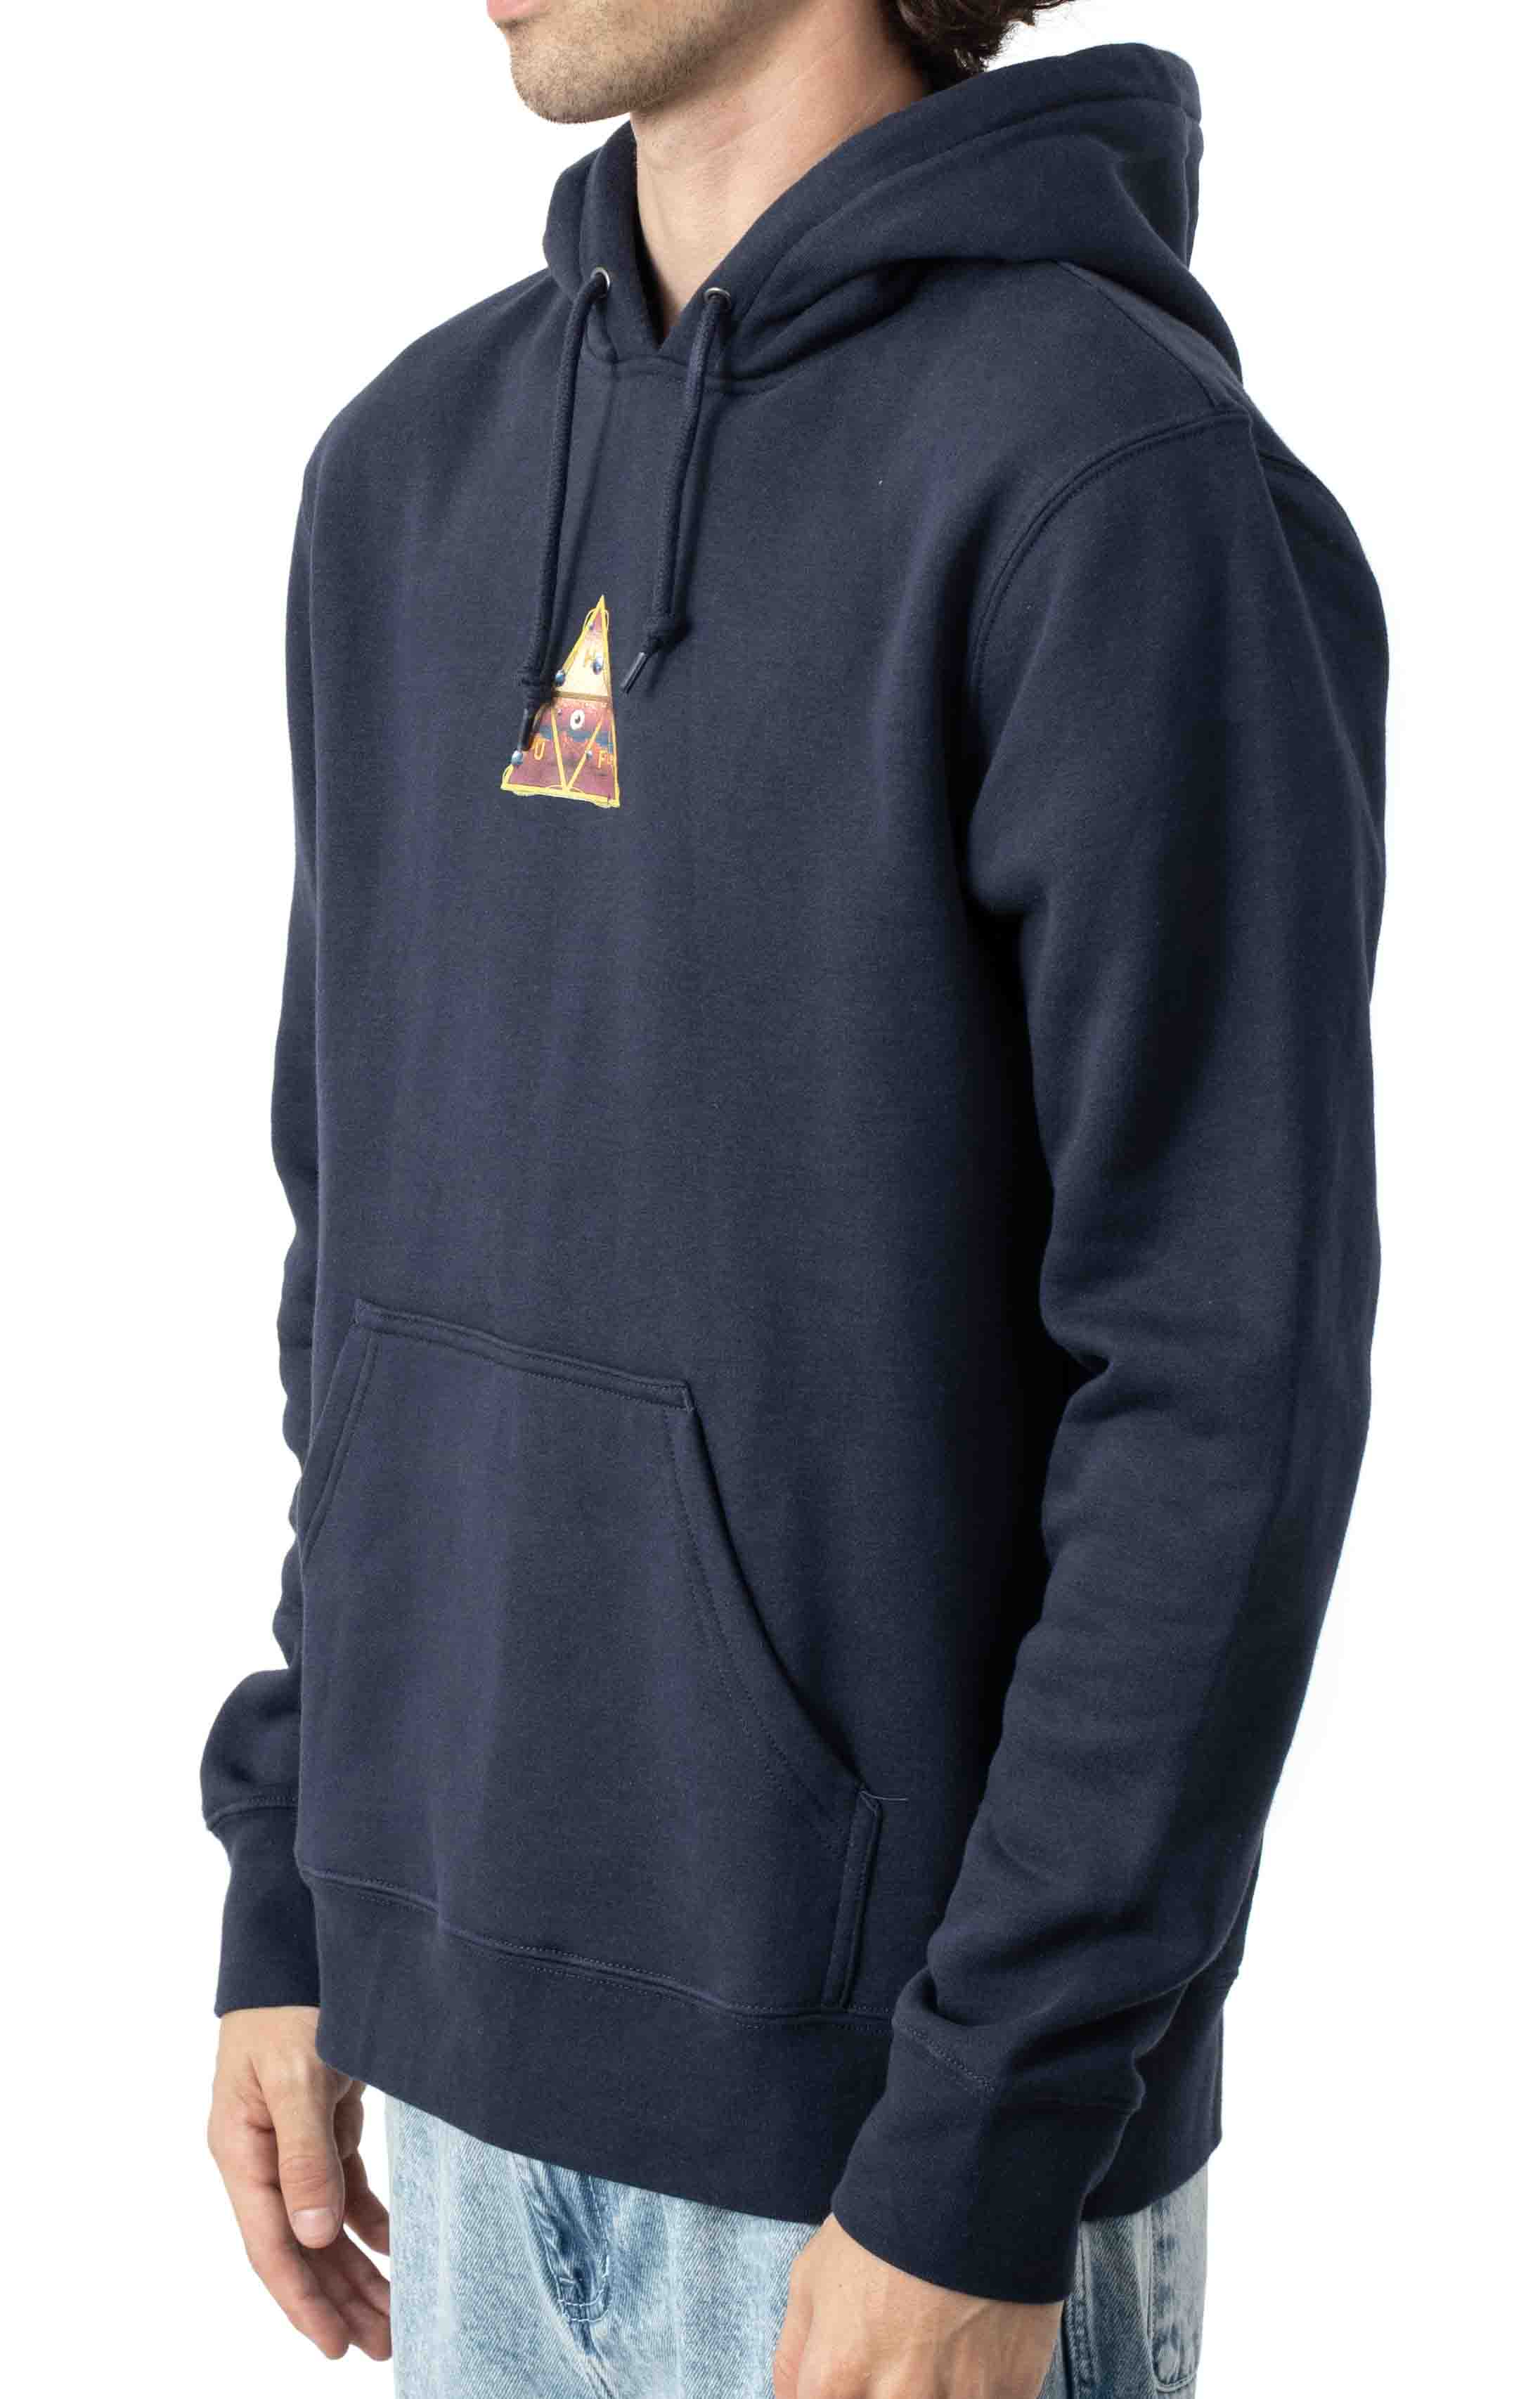 Altered State TT Pullover Hoodie - Navy  2